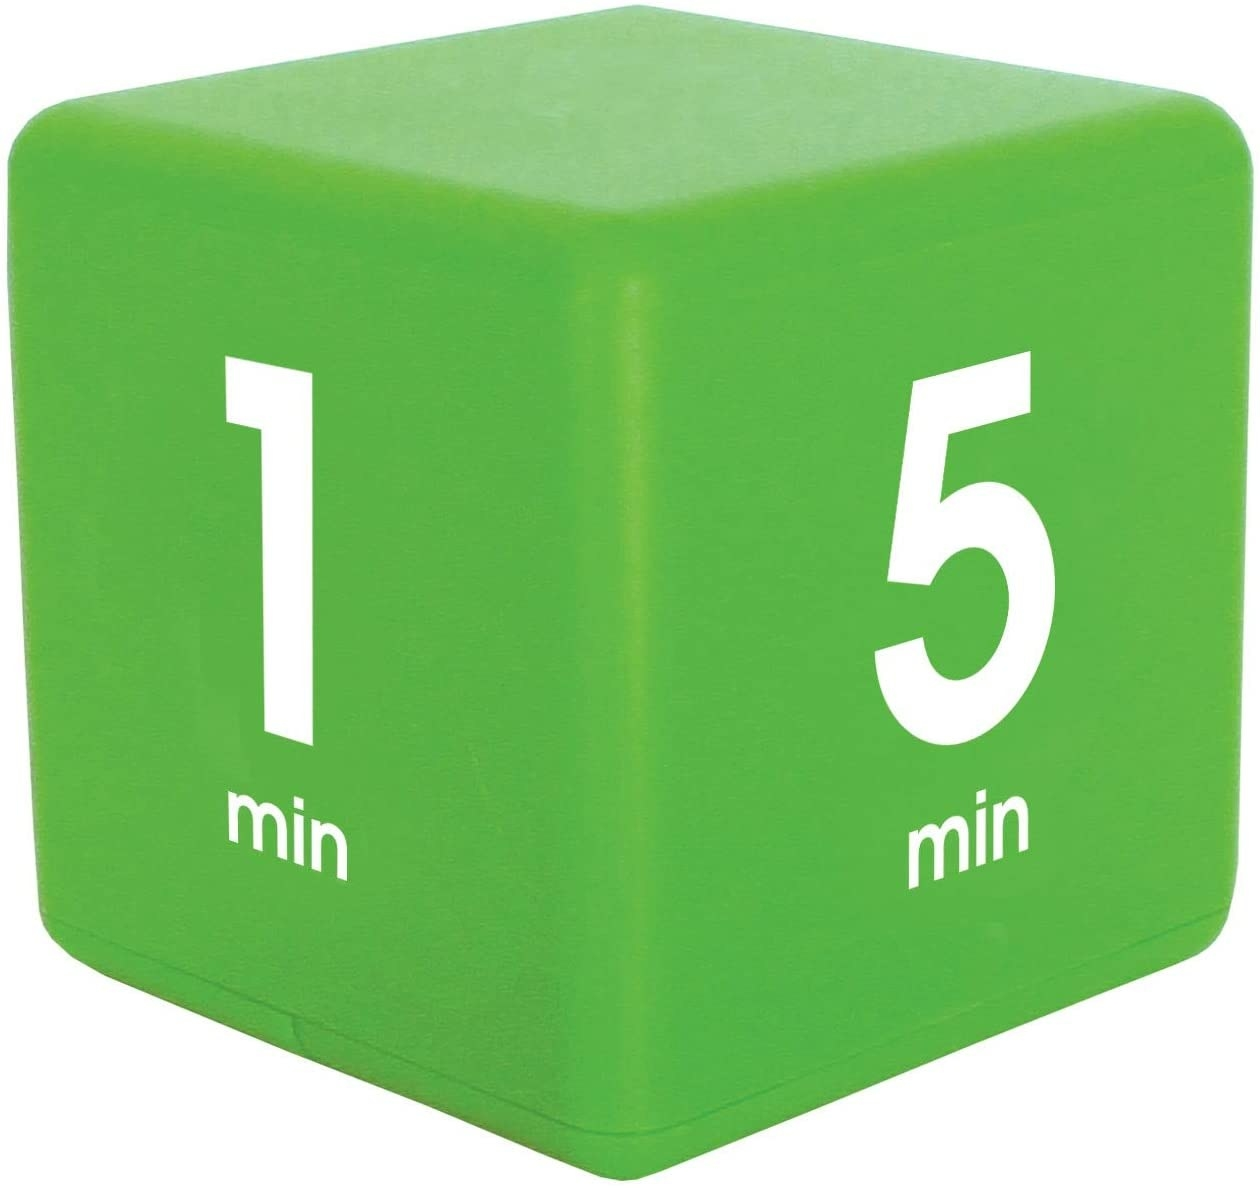 Lime green productivity timer cube isolated on a white background